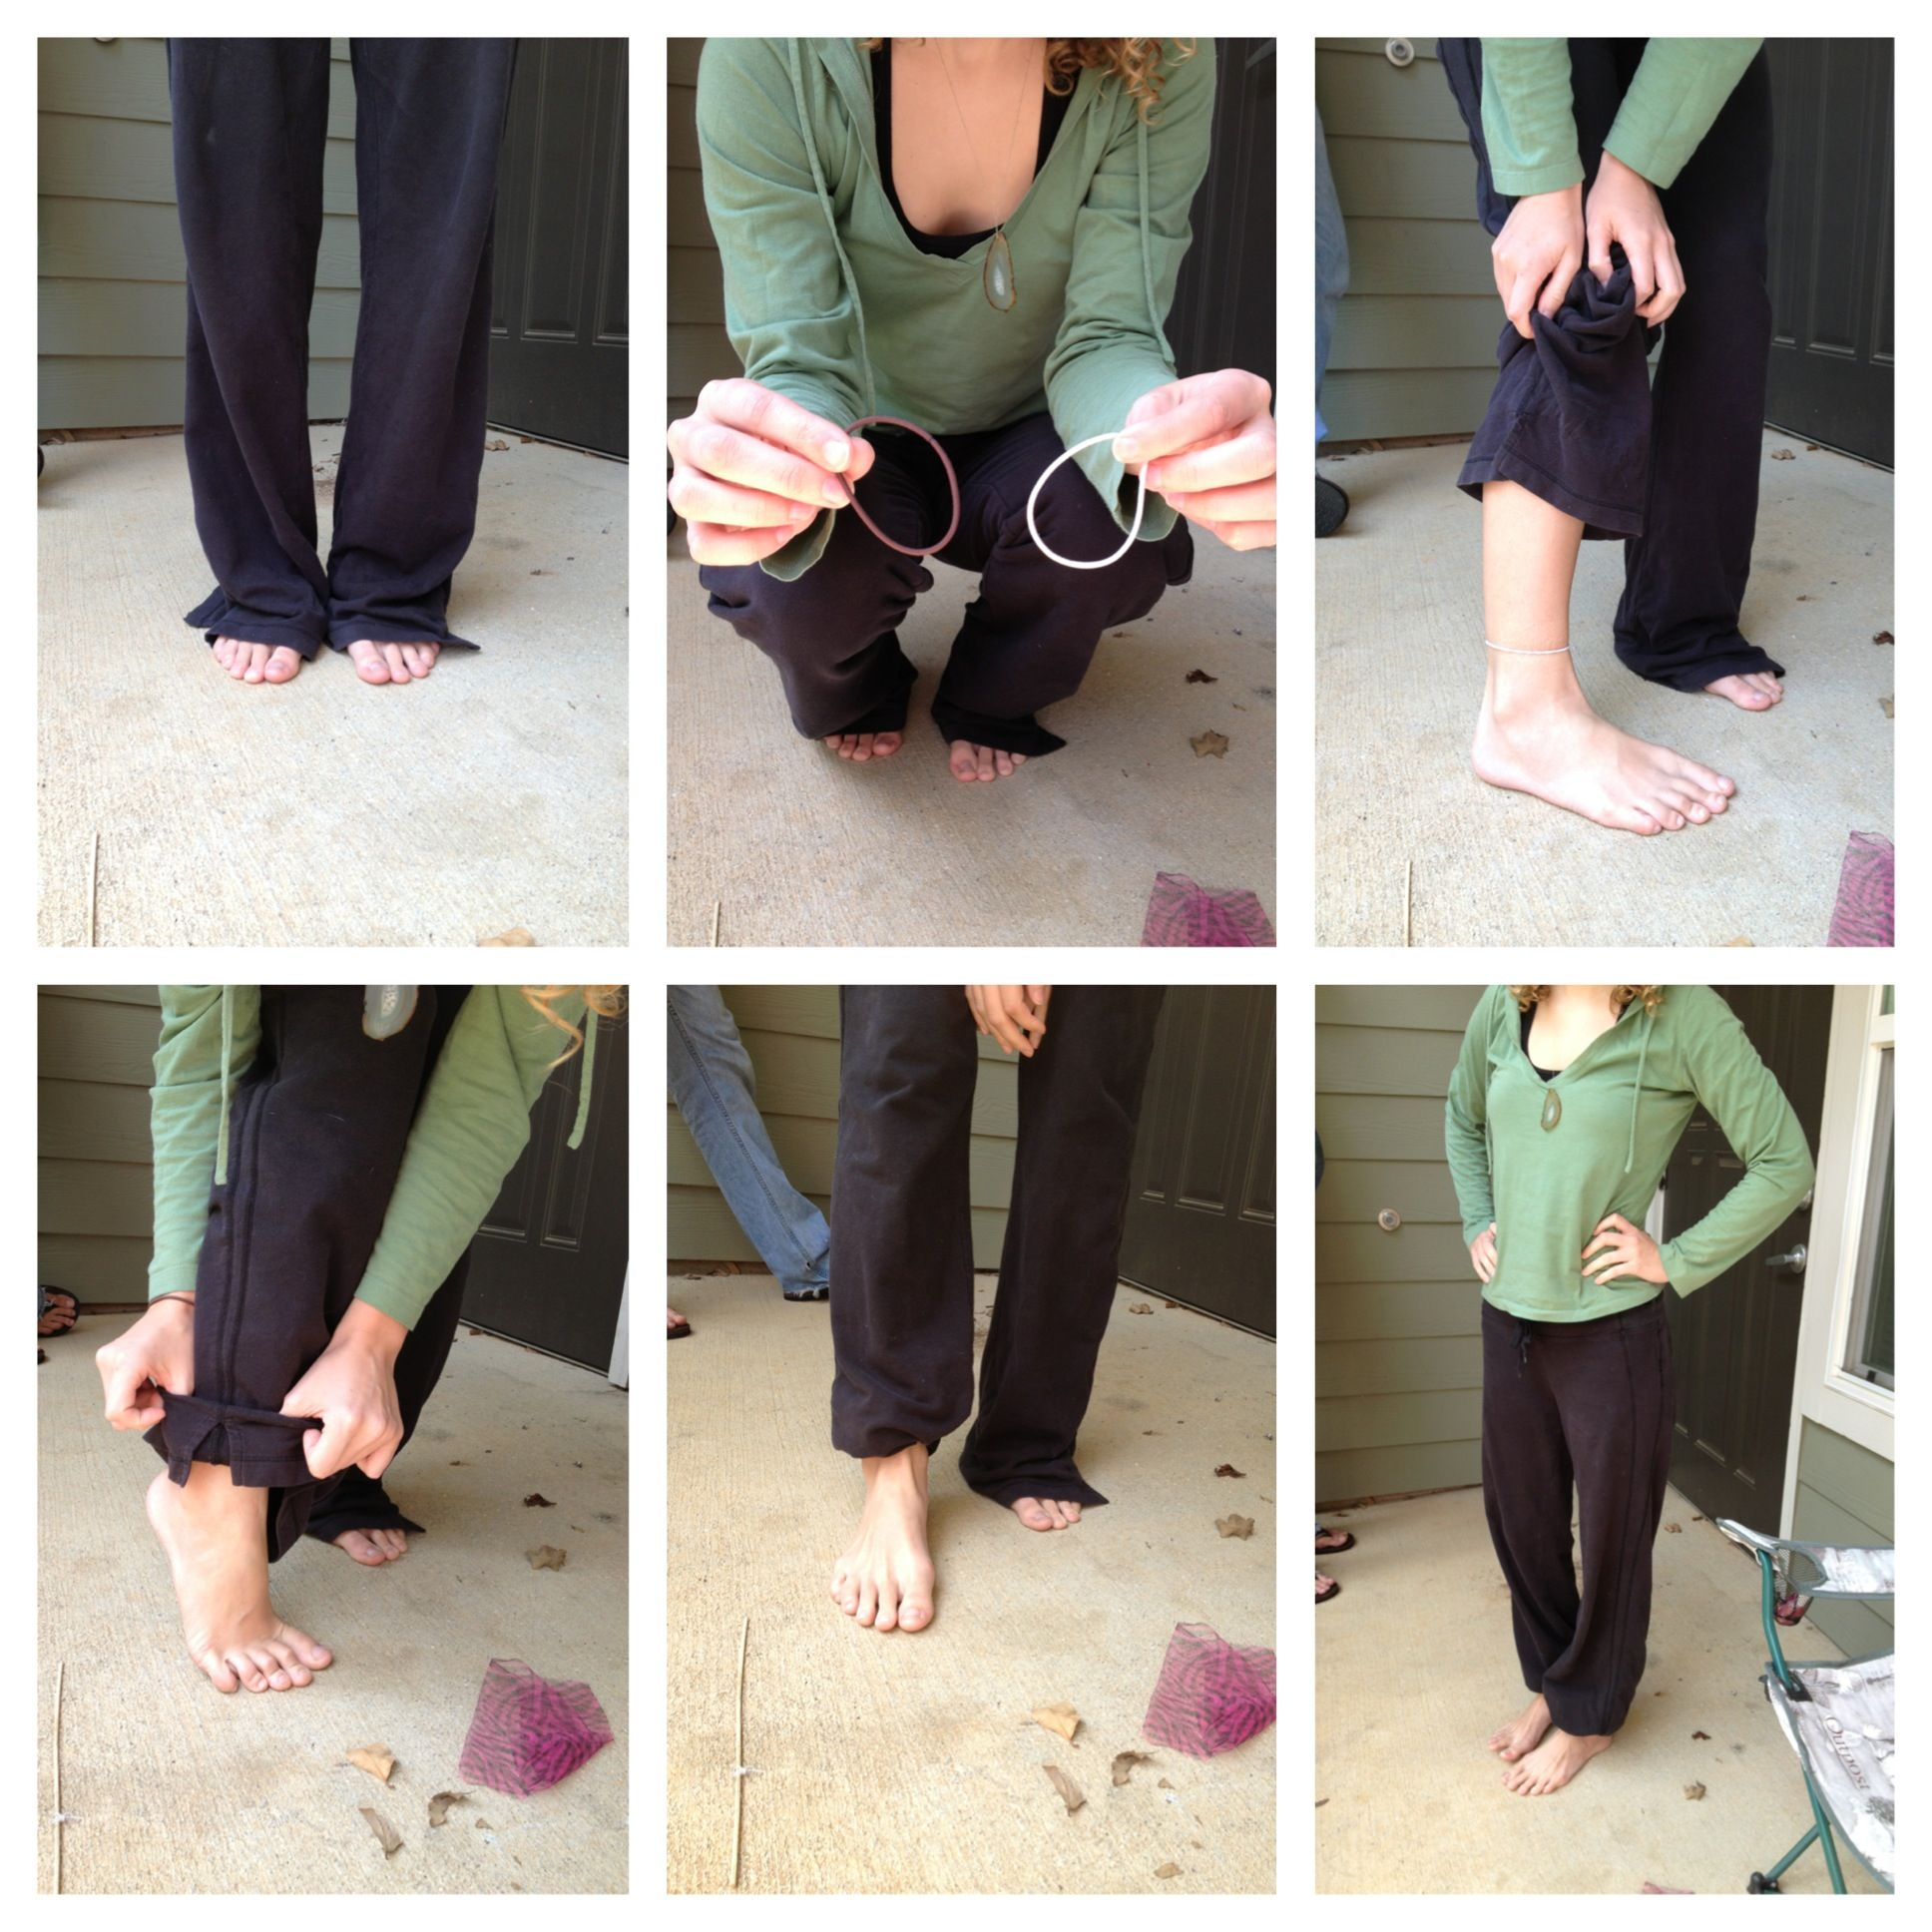 How To Hem Pants With A Cuff Sweat Pants Too Long Tuck Your Pants Under A Hair Tie Or A Rubber Band For A Quick Fix Short Girl Fashion Clothing Hacks Comfy Airport Outfit